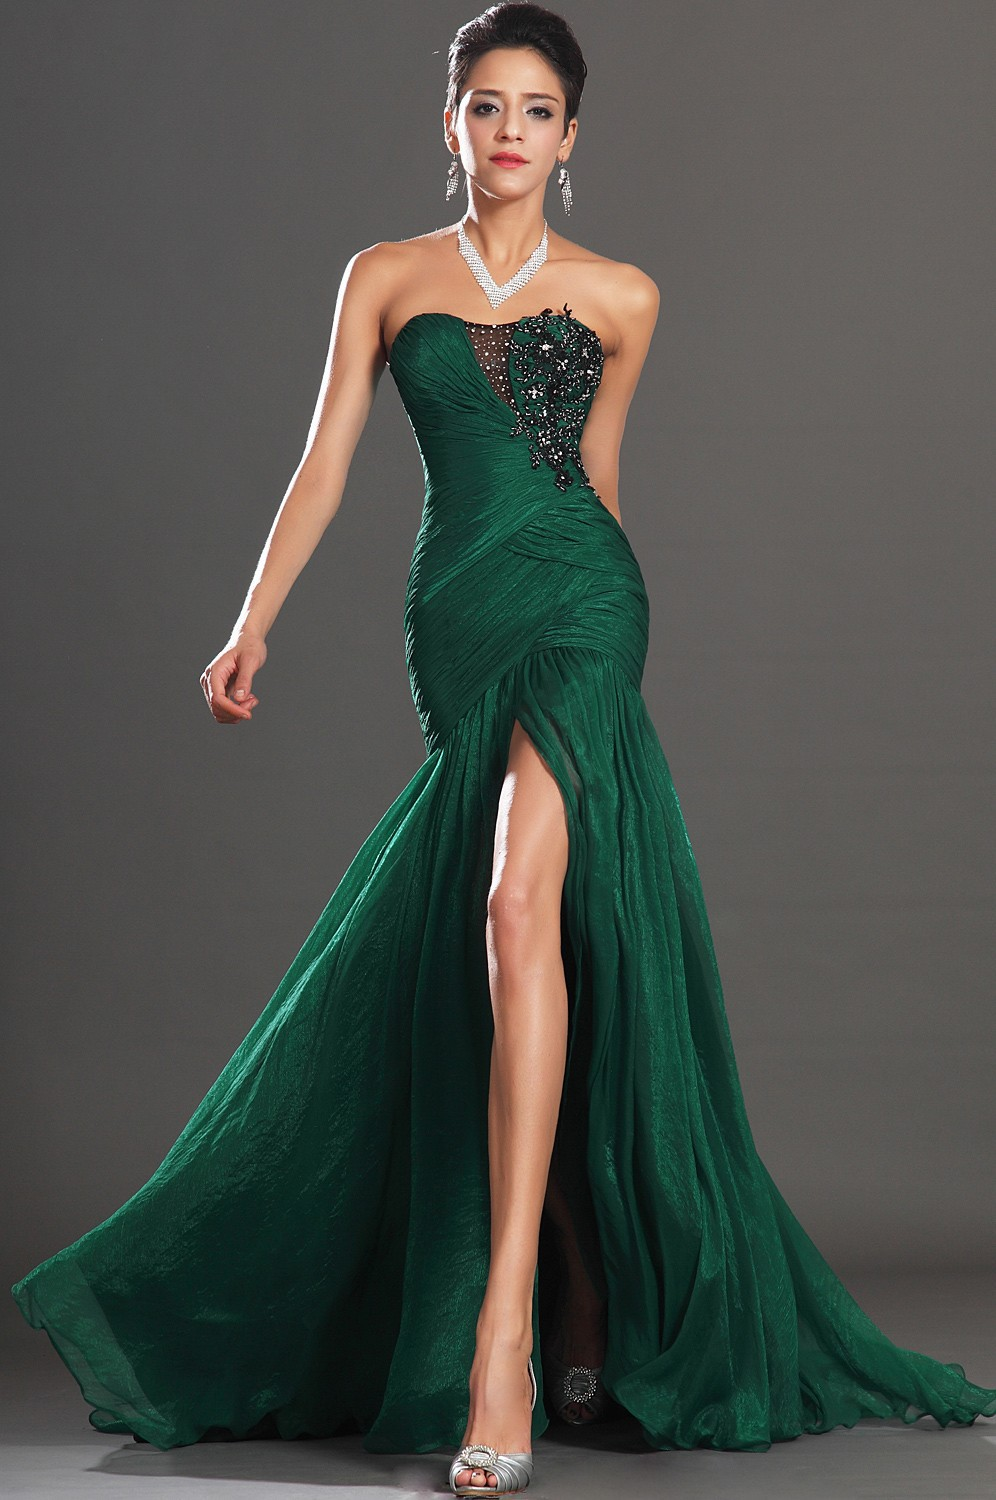 On Sale Sexy Sweetheart Appliques Front Slit Emerald Green Chiffon Mermaid Evening Dress Prom Formal Gowns 2013 New Arrival-in Evening Dresses from Apparel & Accessories on Aliexpress.com